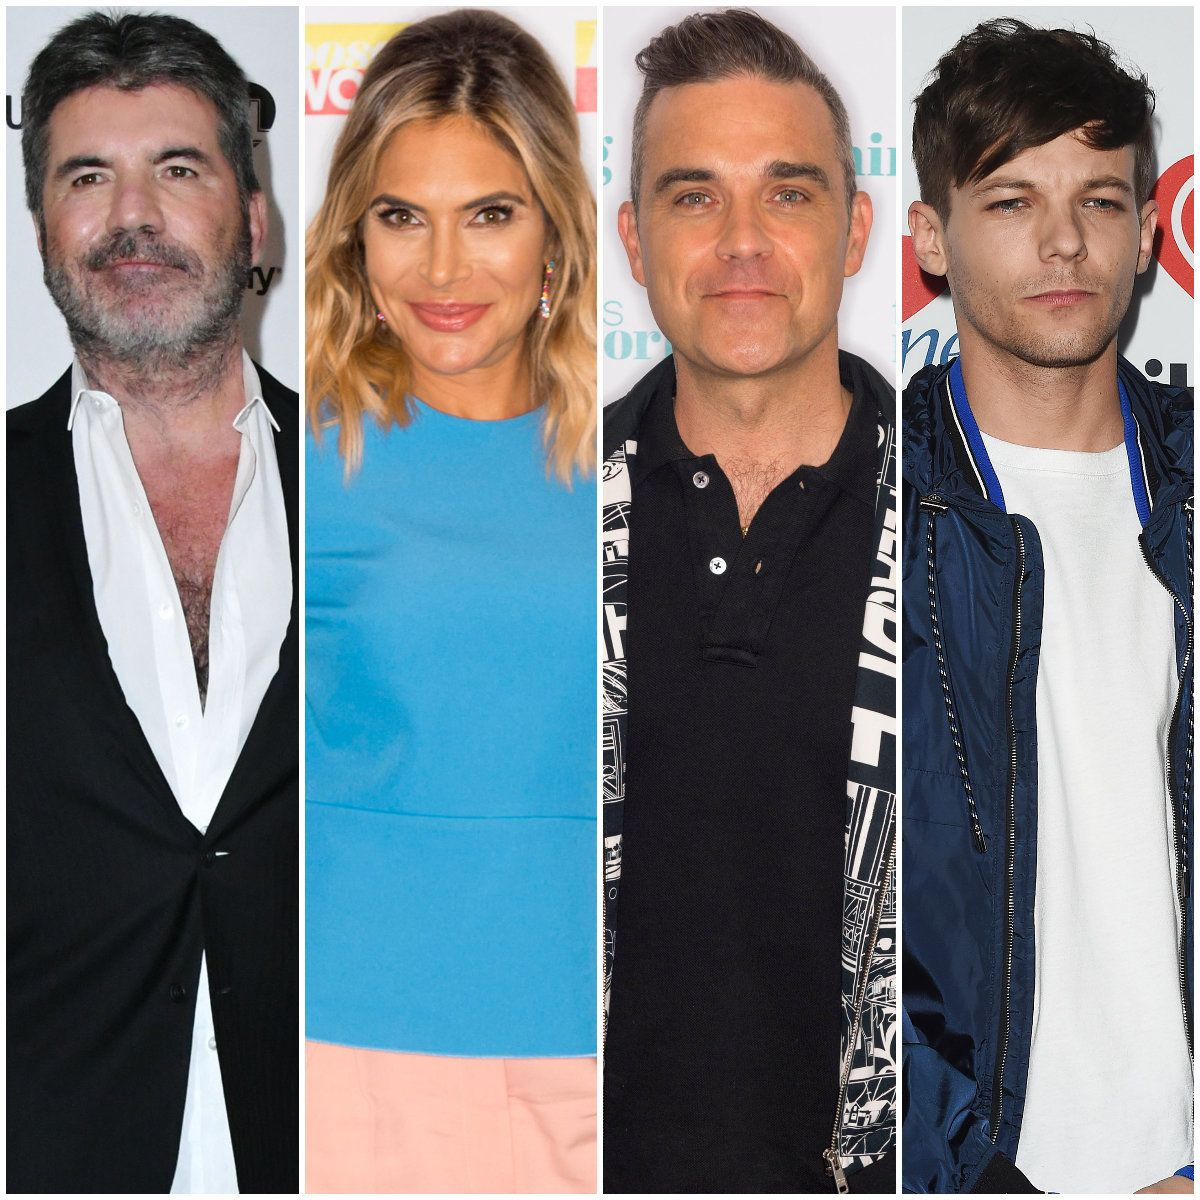 Are We Looking At The New 'X Factor' Judging